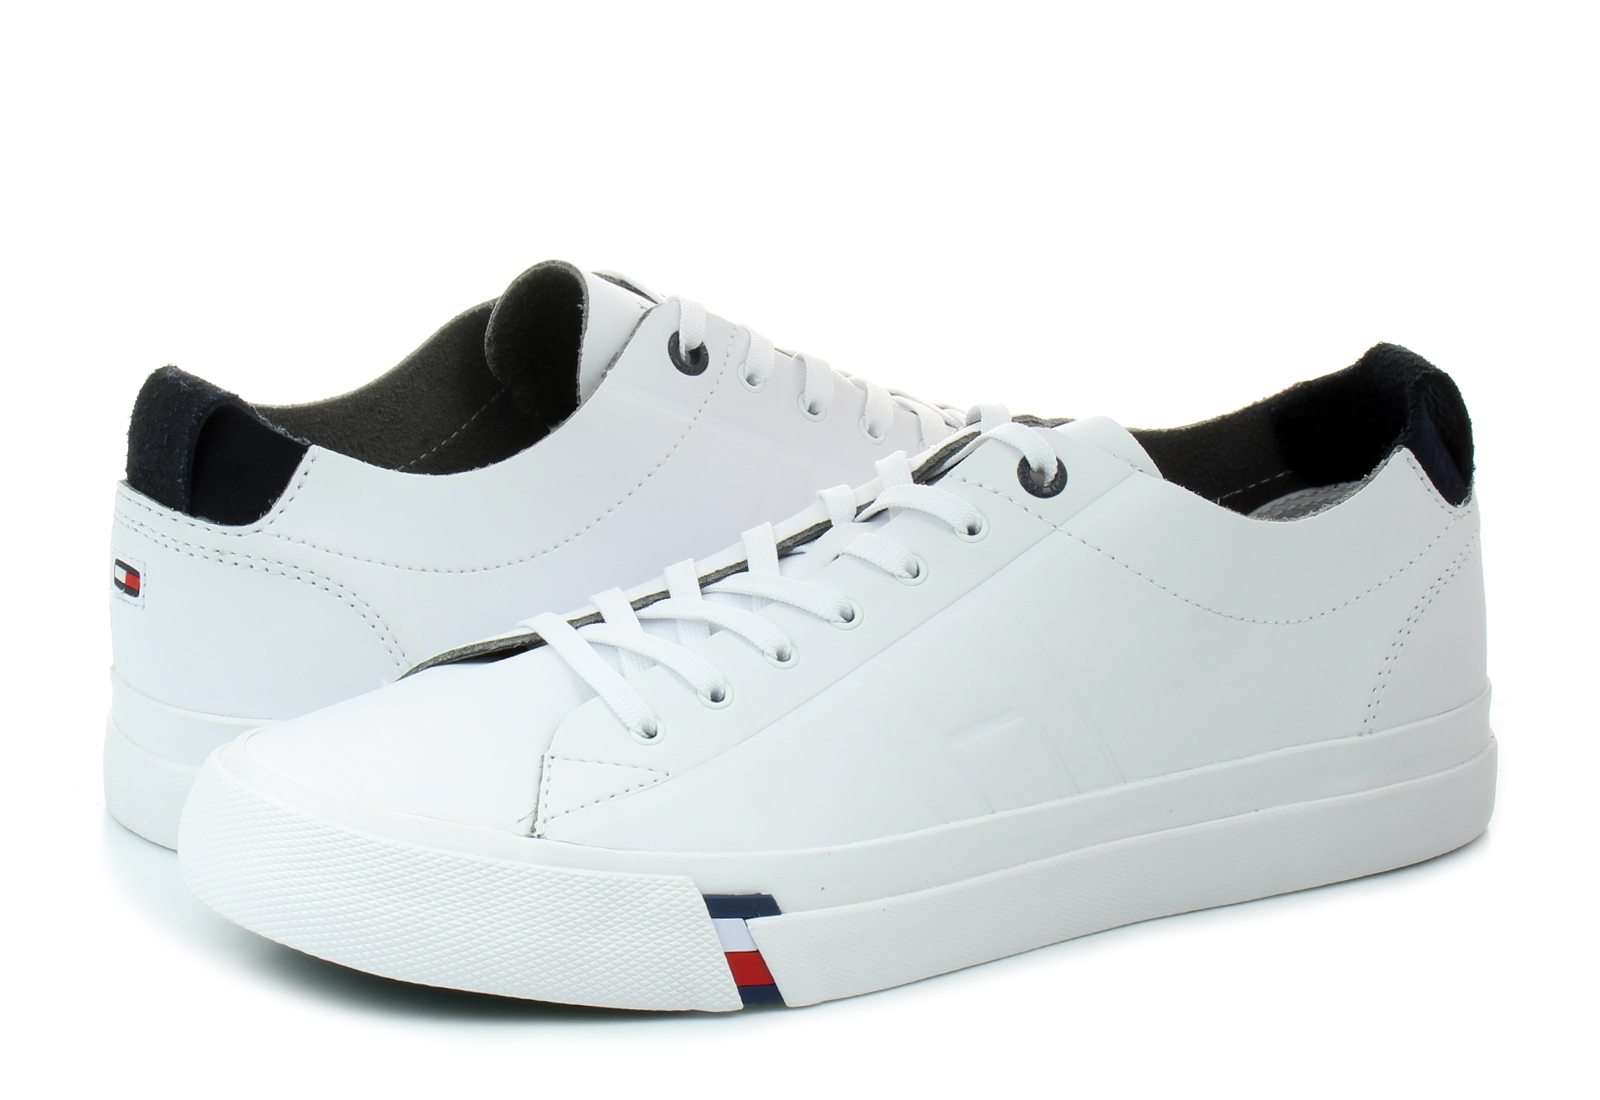 46fa2c91a1a93 Dino 1a - 18S-1214-100 - Online shop for ... - Tommy Hilfiger Shoes